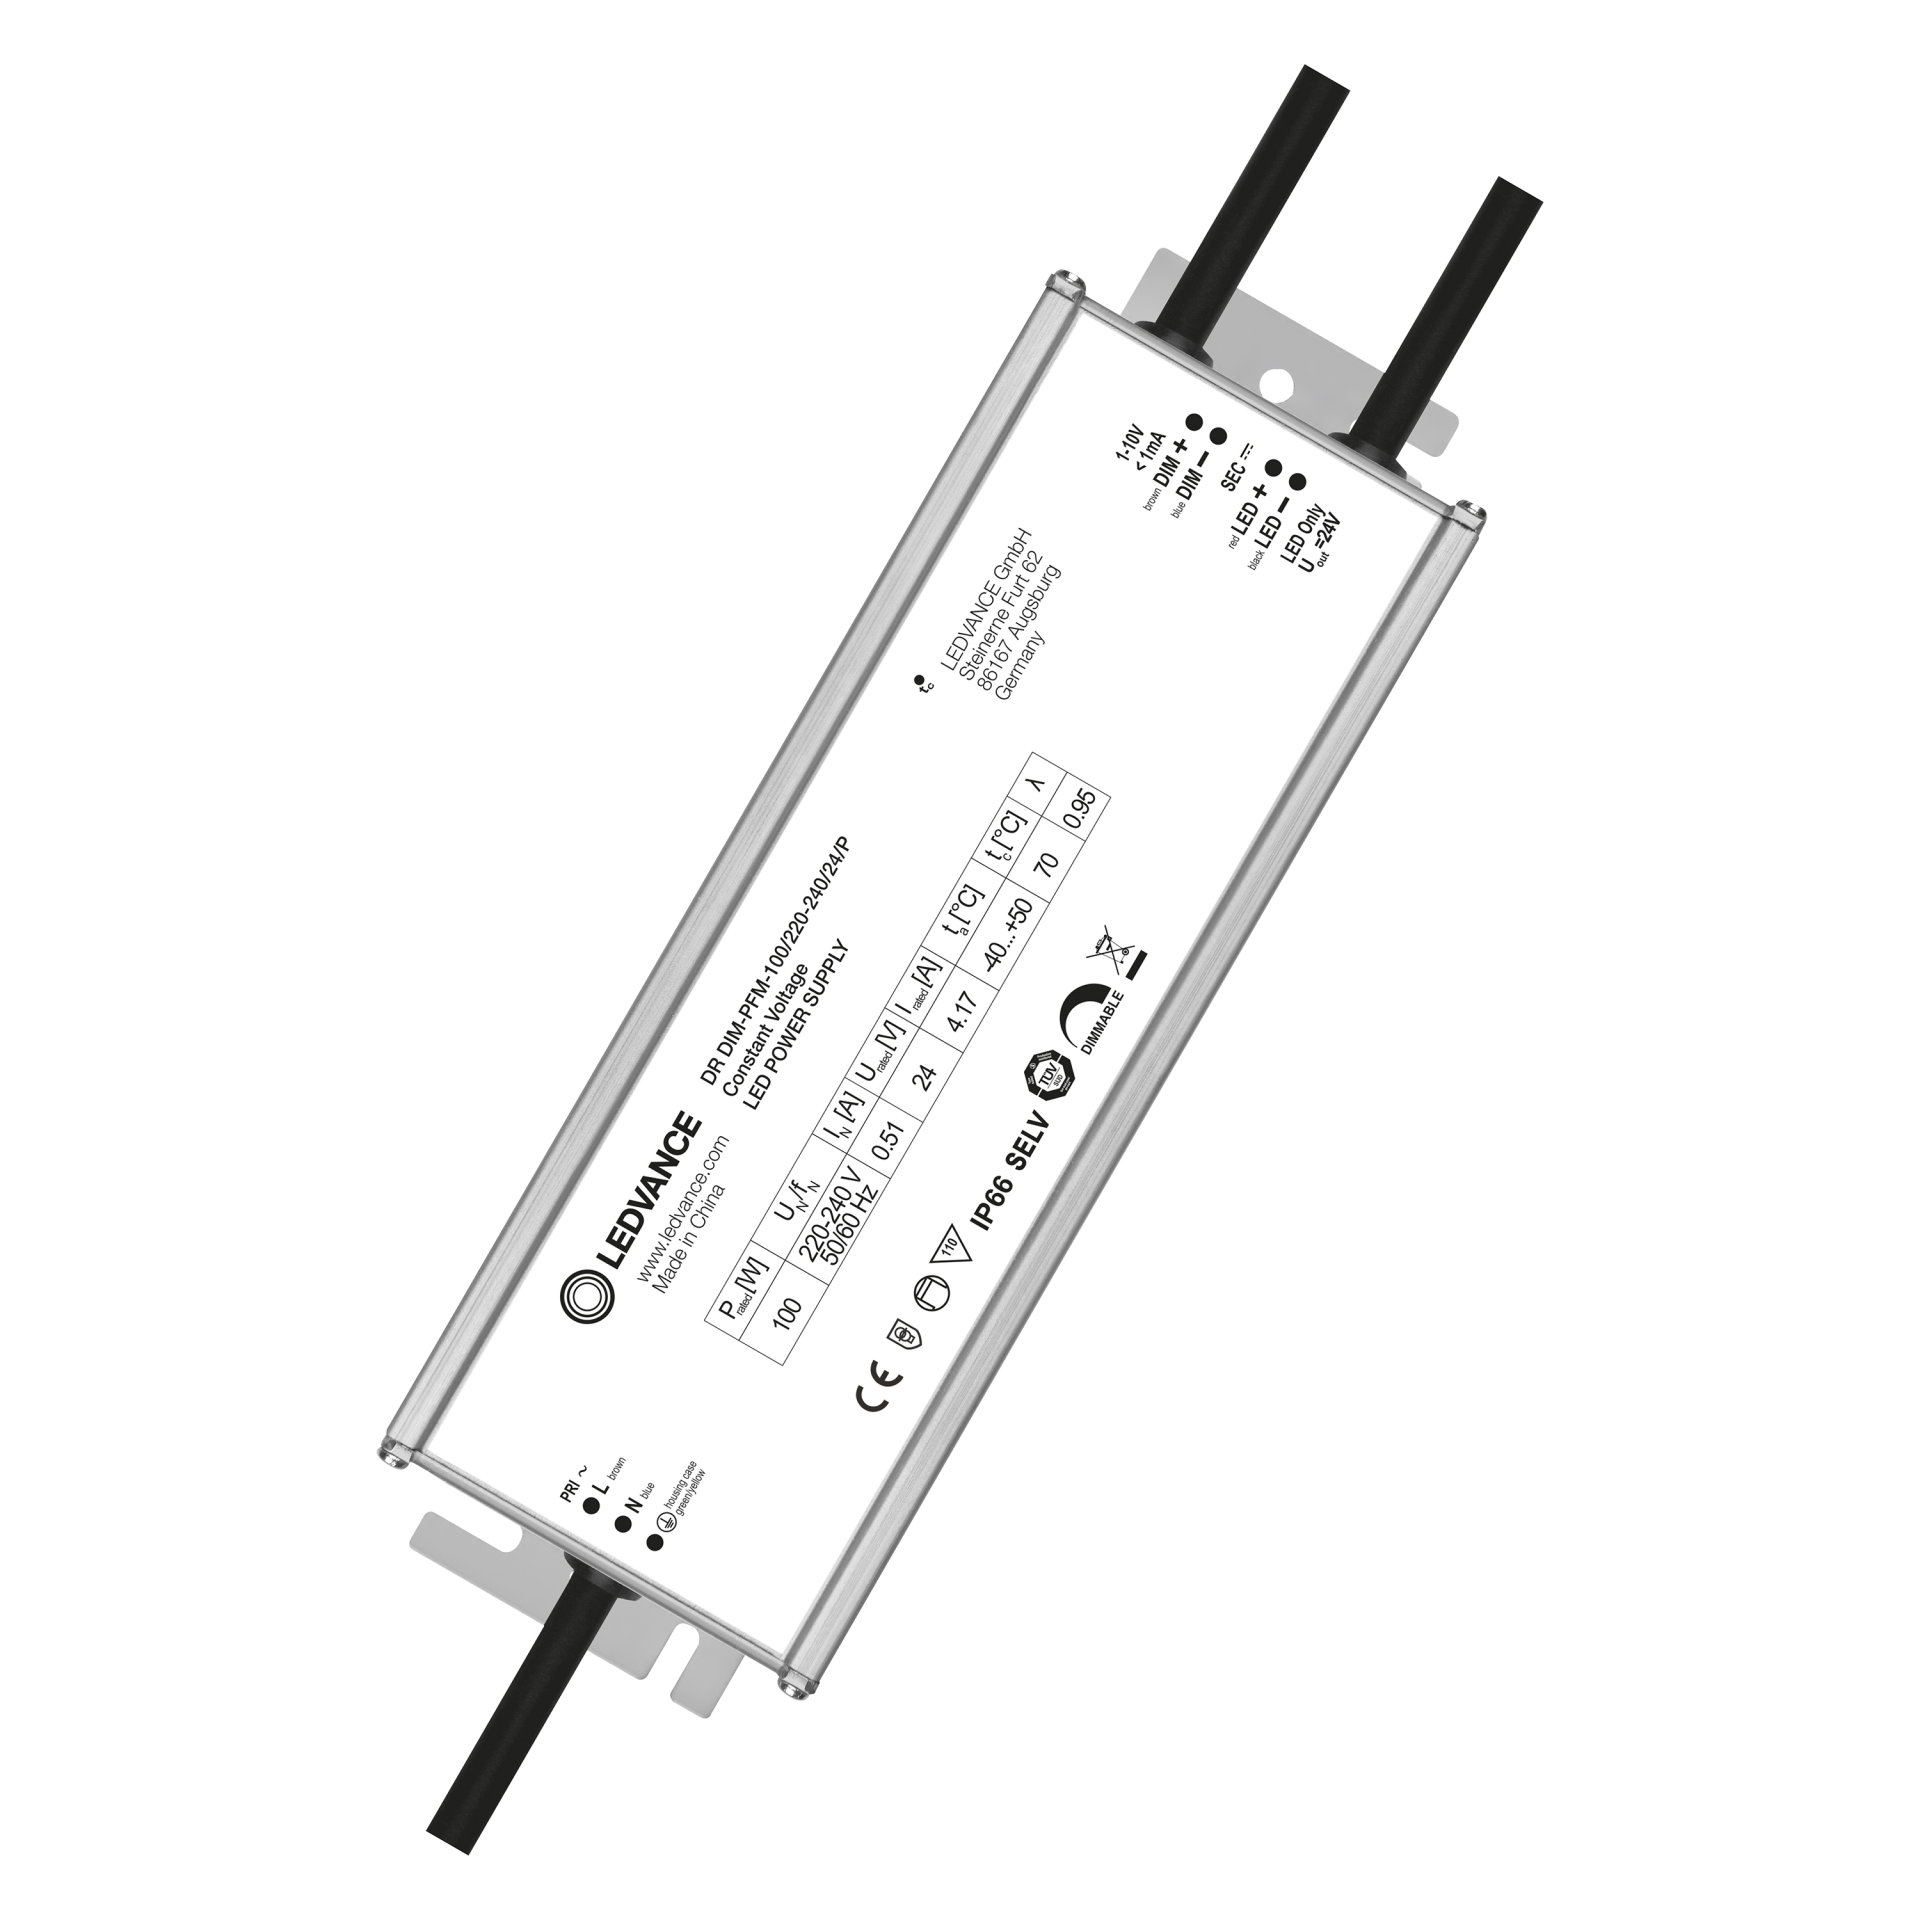 LED DRIVER 1-10 V DIM OUTDOOR PERFORMANCE